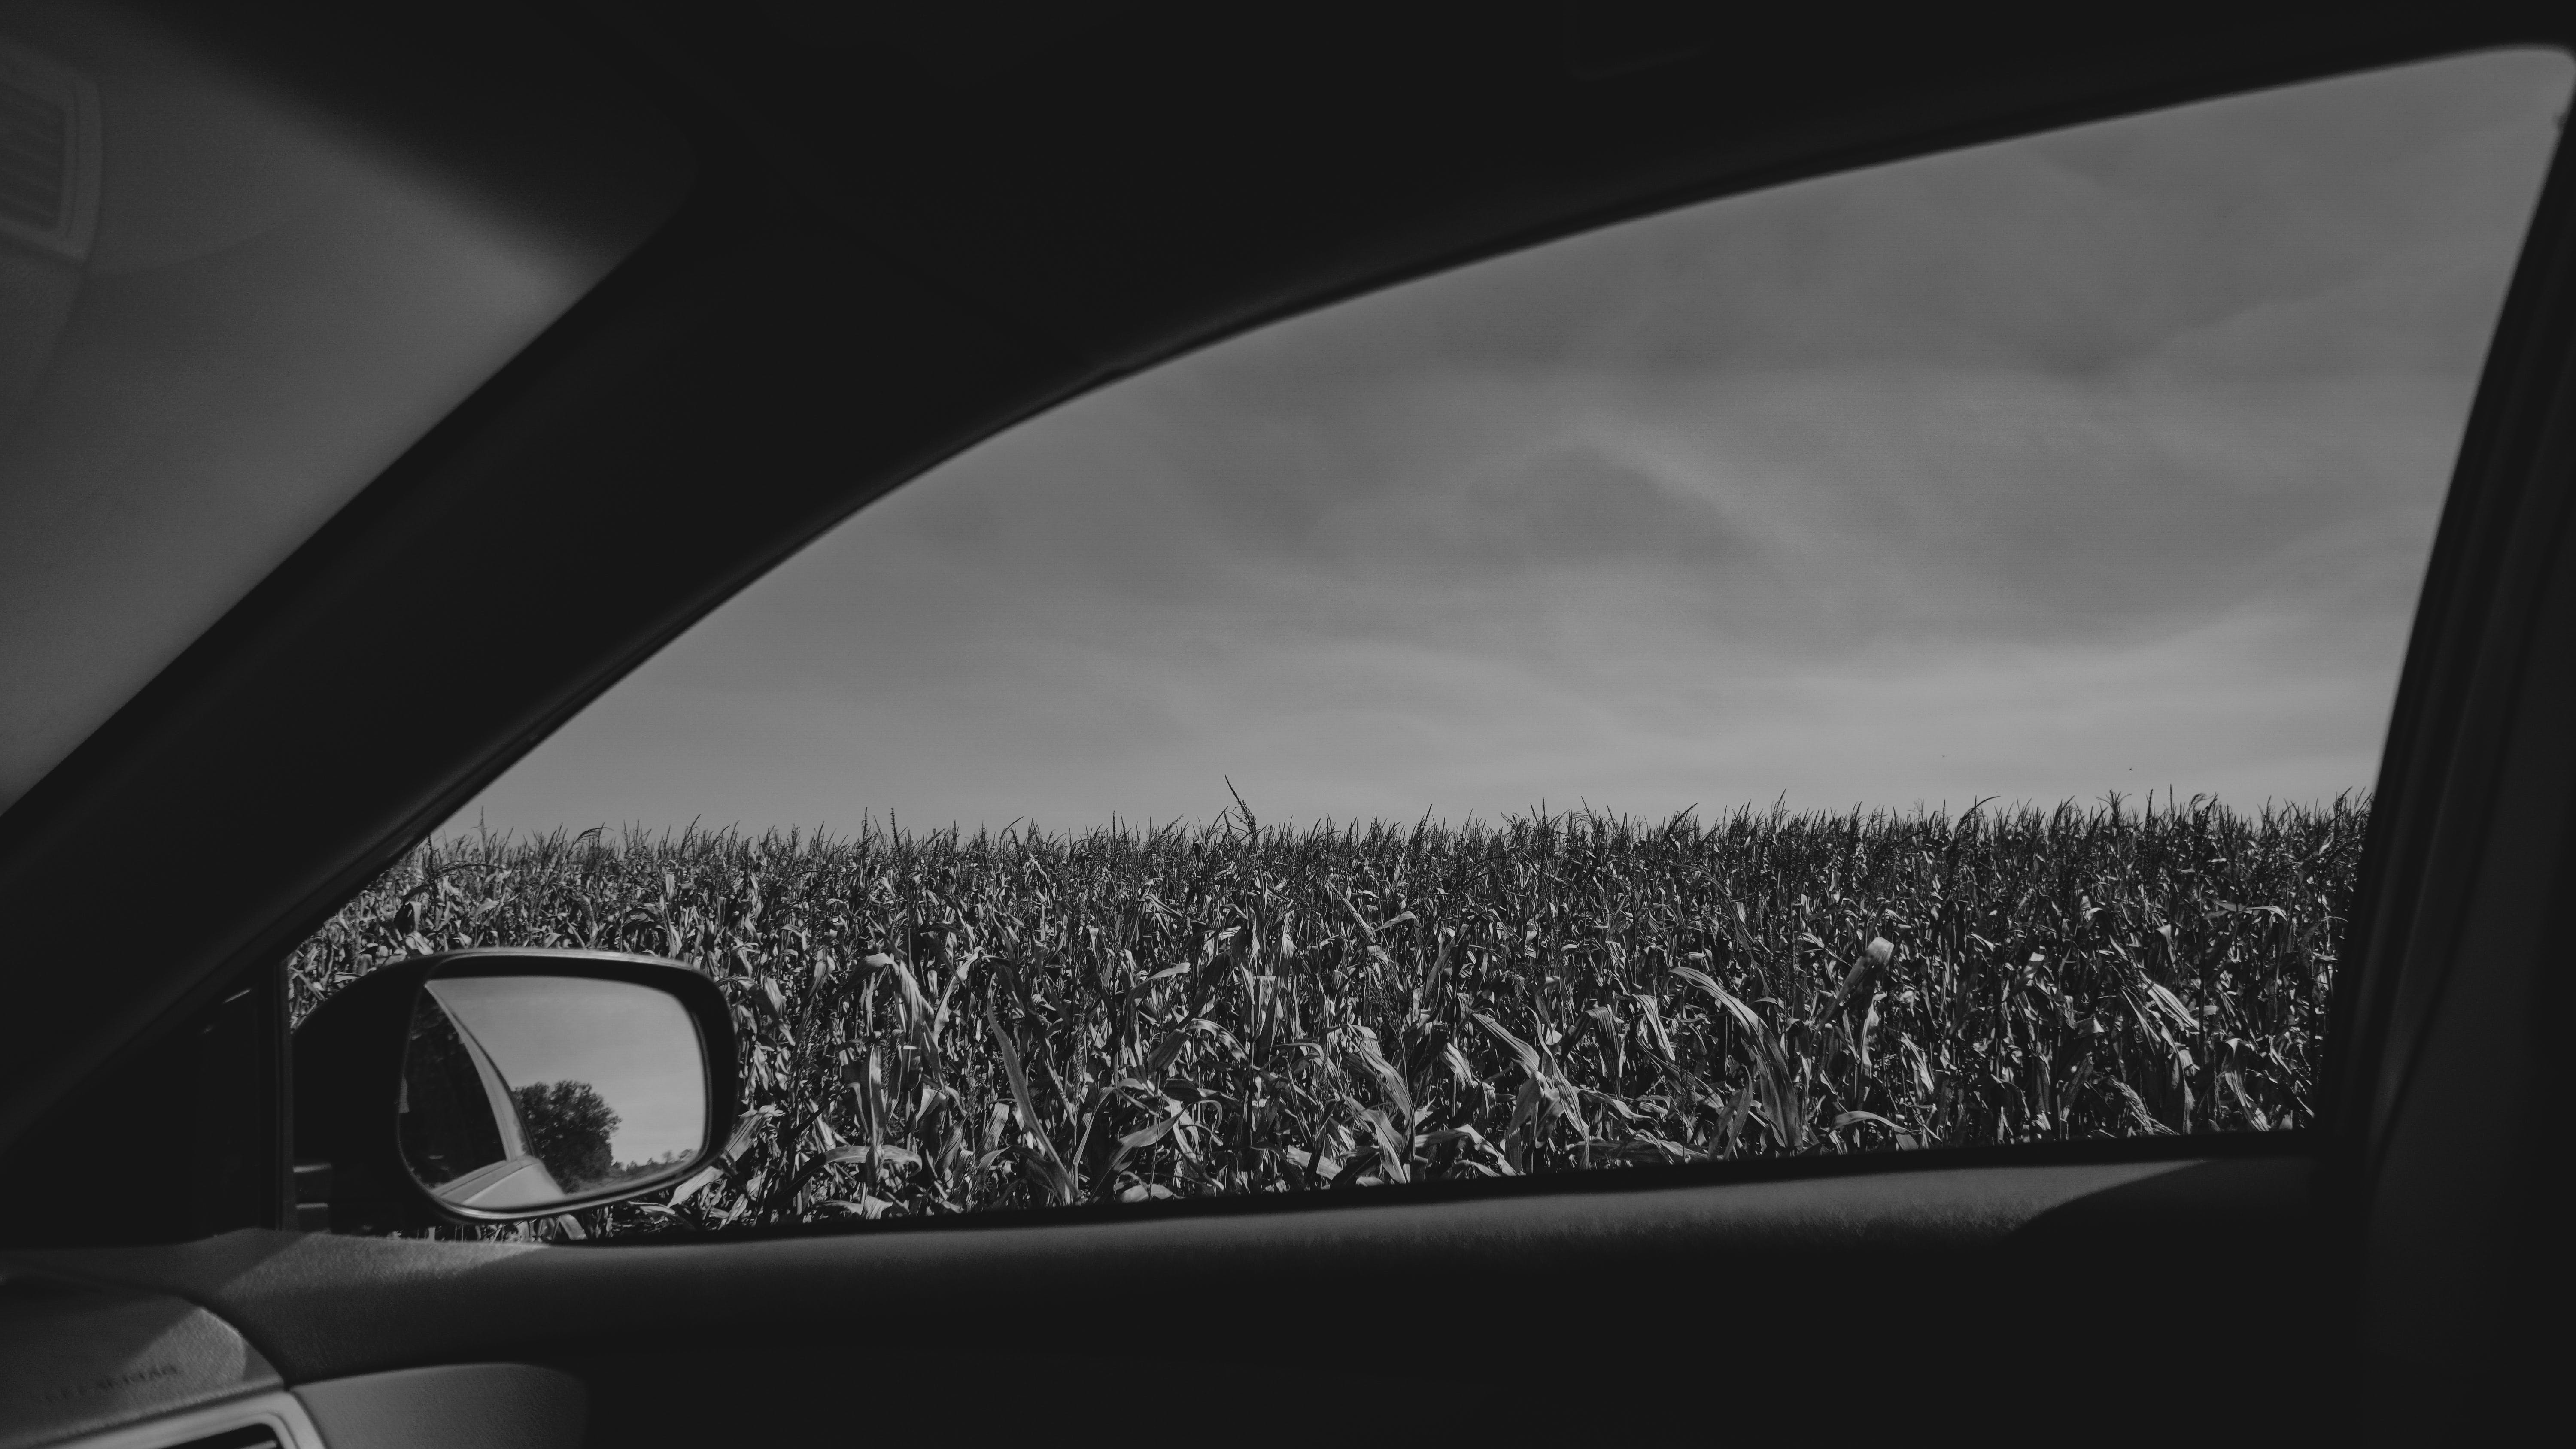 Grayscale Photography of Plant Field Seen Through Vehicle Window